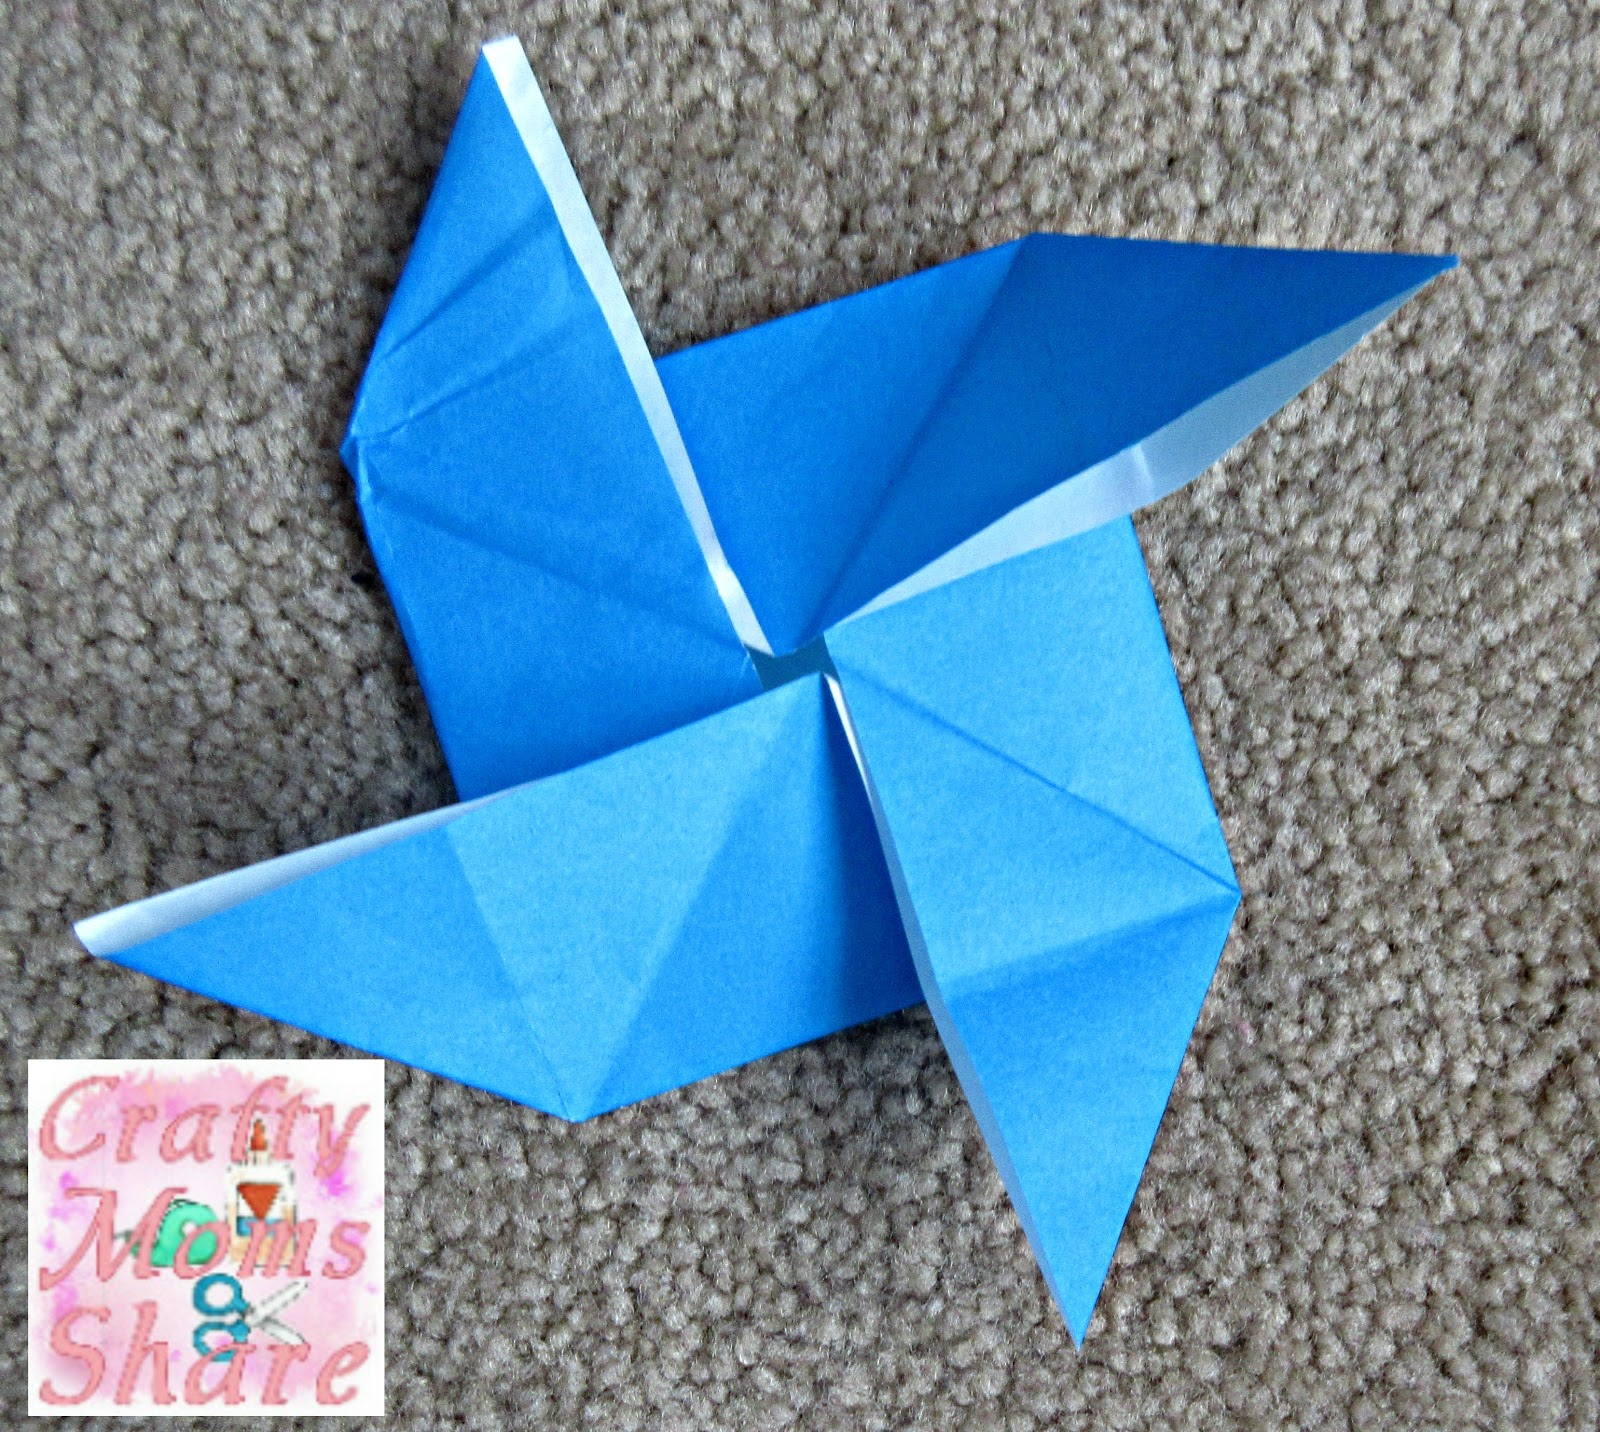 Crafty moms share origami fun i also made this windmill i havent attached it to stick yet but love how it turned out jeuxipadfo Image collections